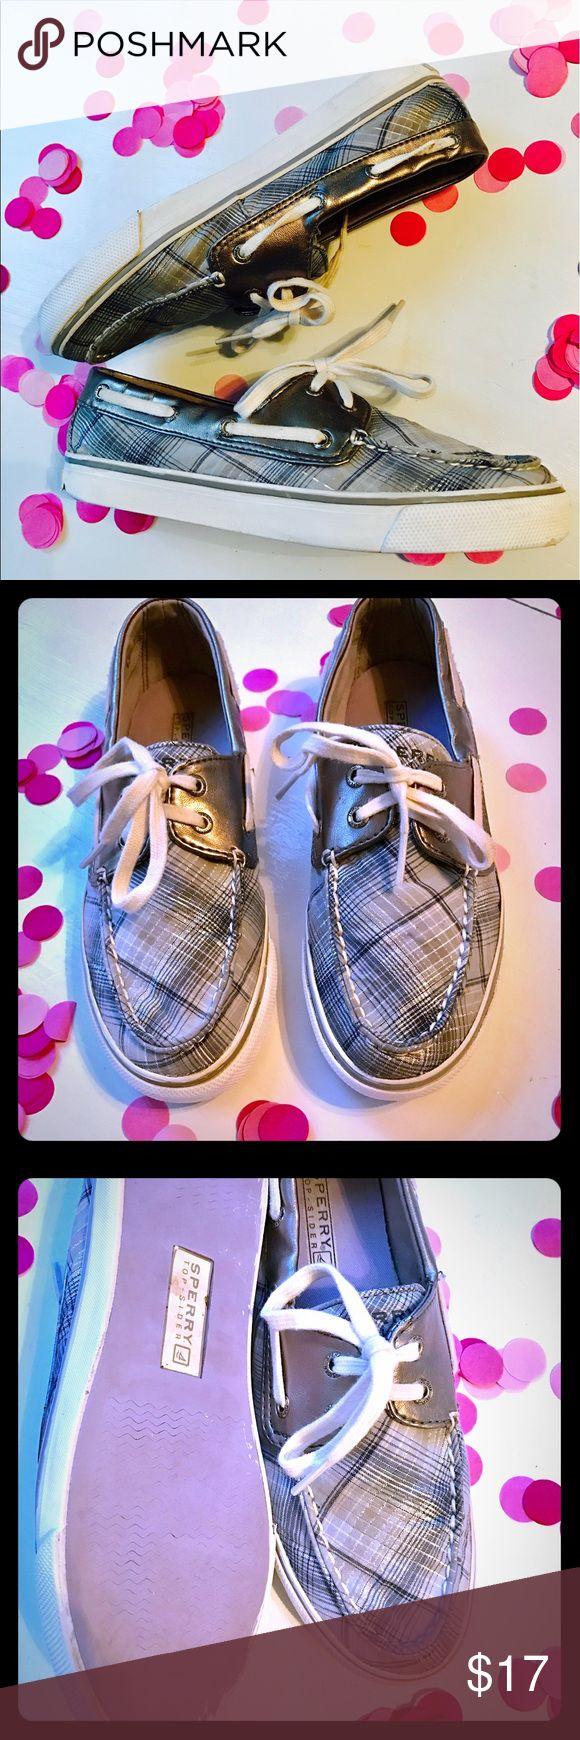 Sperry Topsider's Sperry  topsider loafers. Silver and navy. Sperry Top-Sider Shoes Flats & Loafers